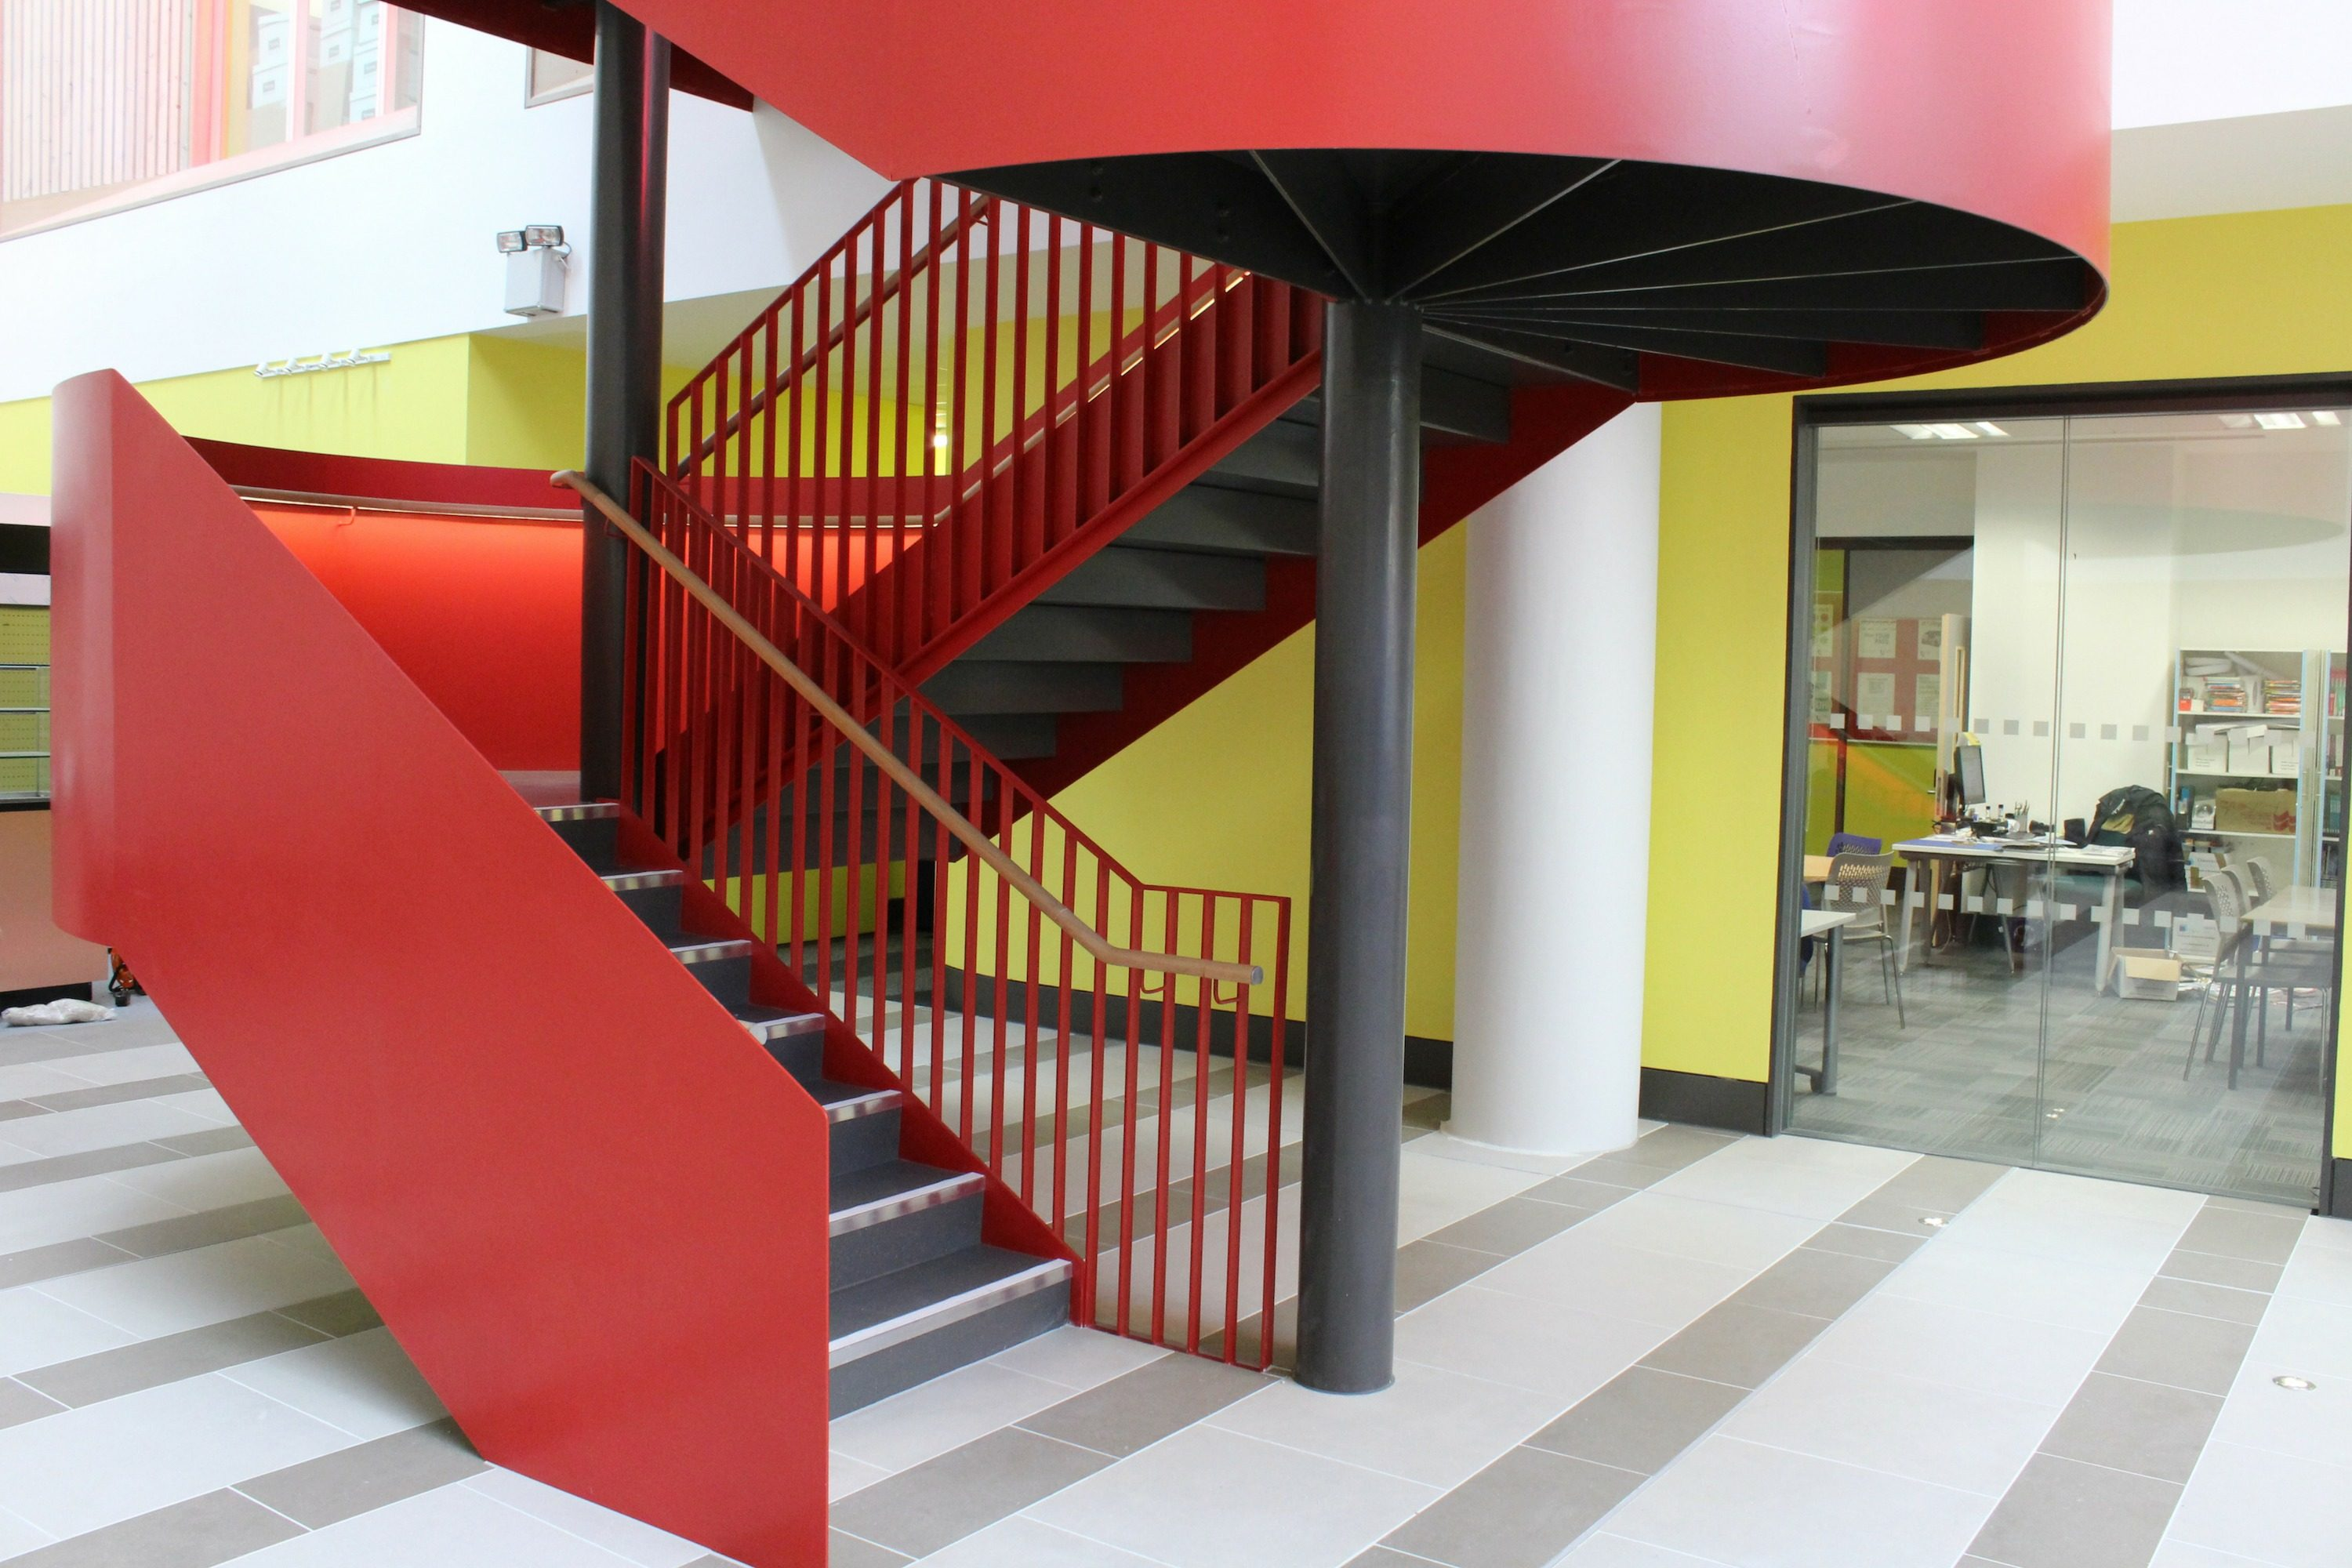 Red balustrade on school staircase